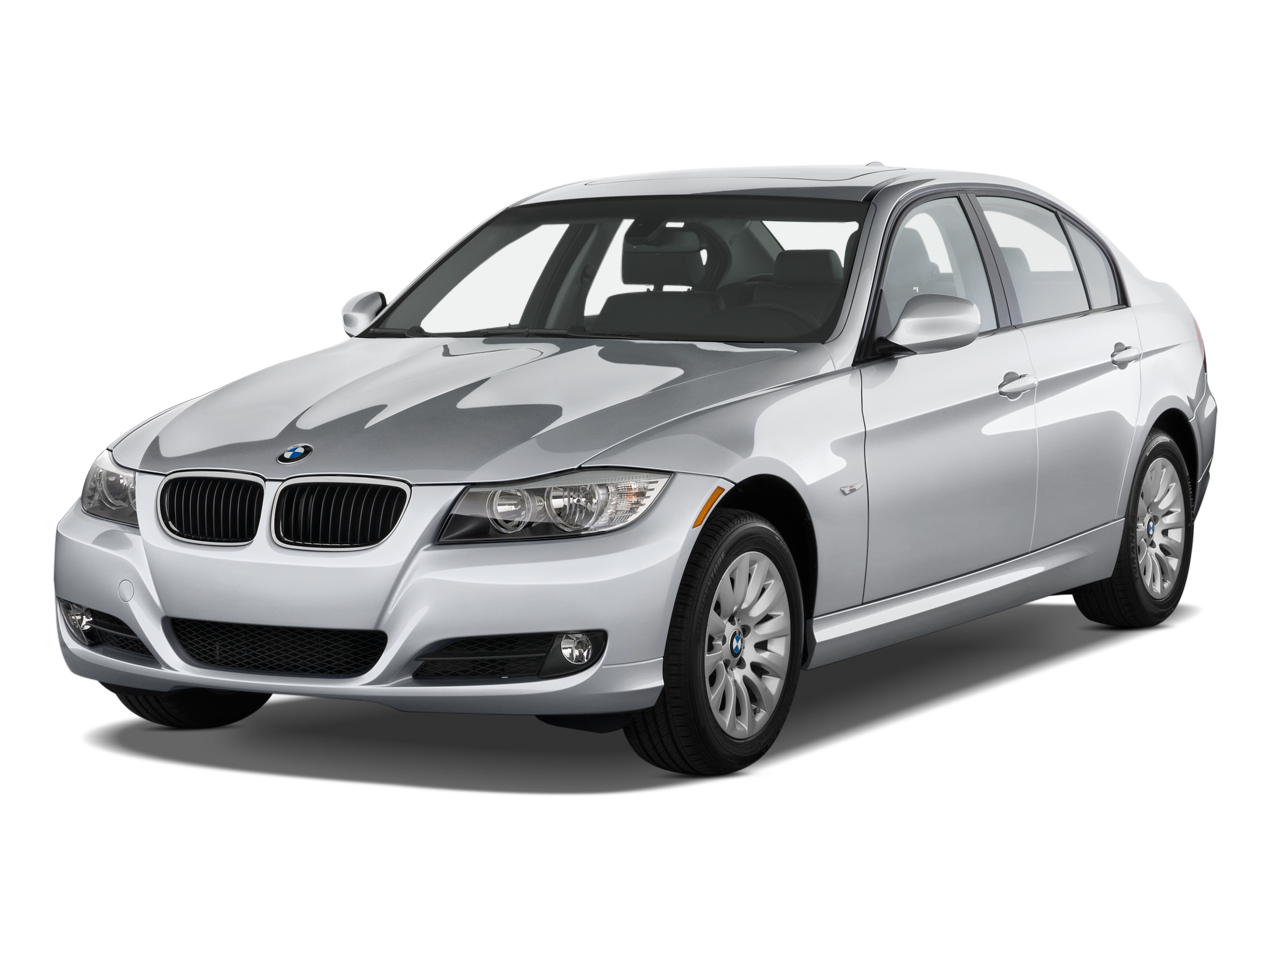 White car png